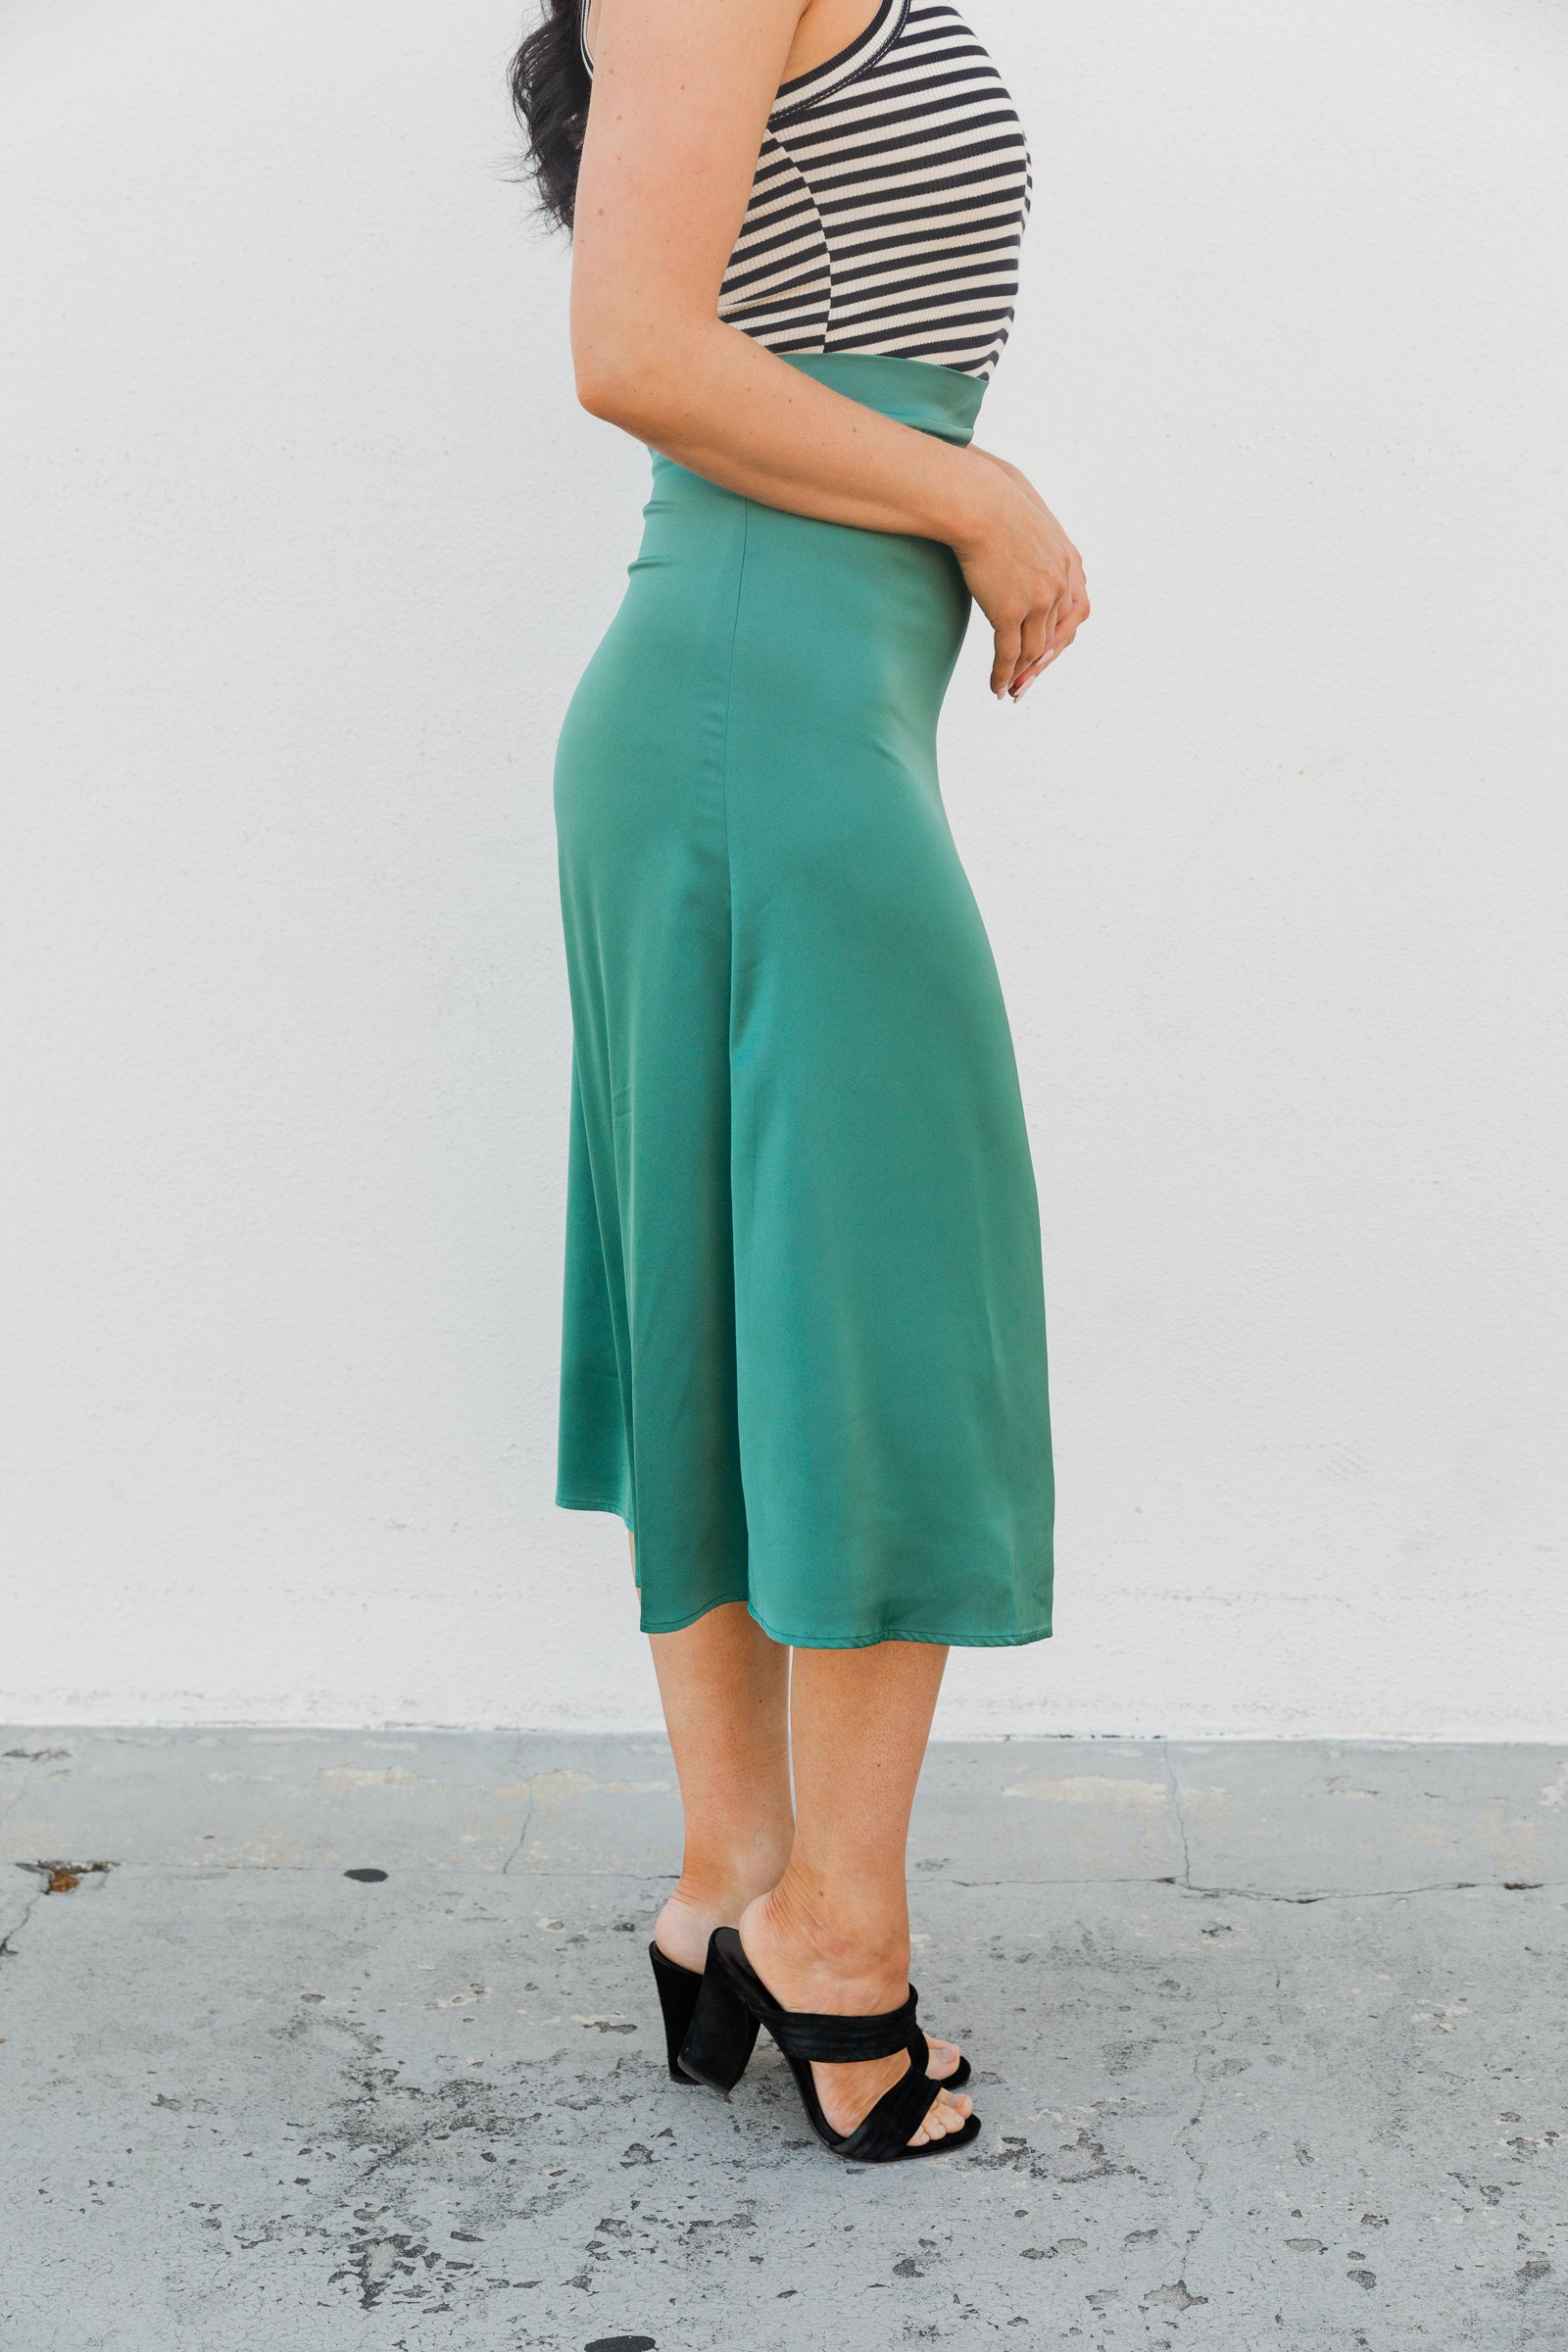 This satiny skirt has a fitted waistband with a zipper at the side that leads into a fitted then flowy skirt silhouette that meets mid-calf. Style this spring midi skirt with a bodysuit.